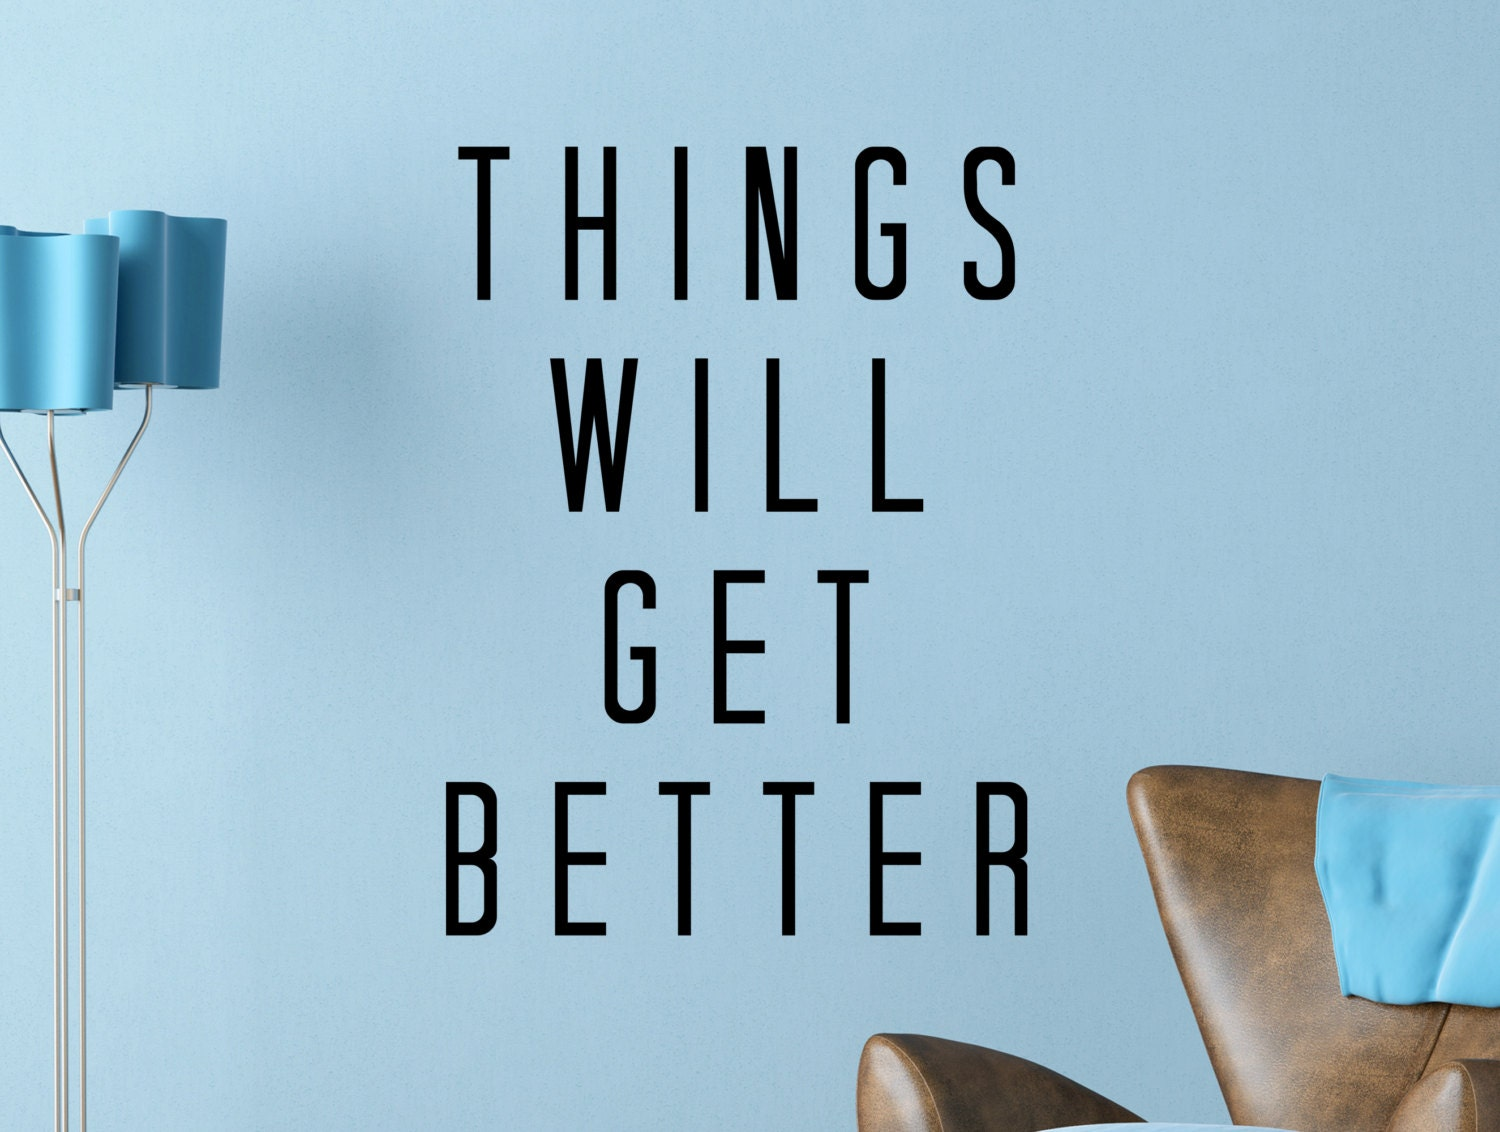 Things will get better quote motivational typography by